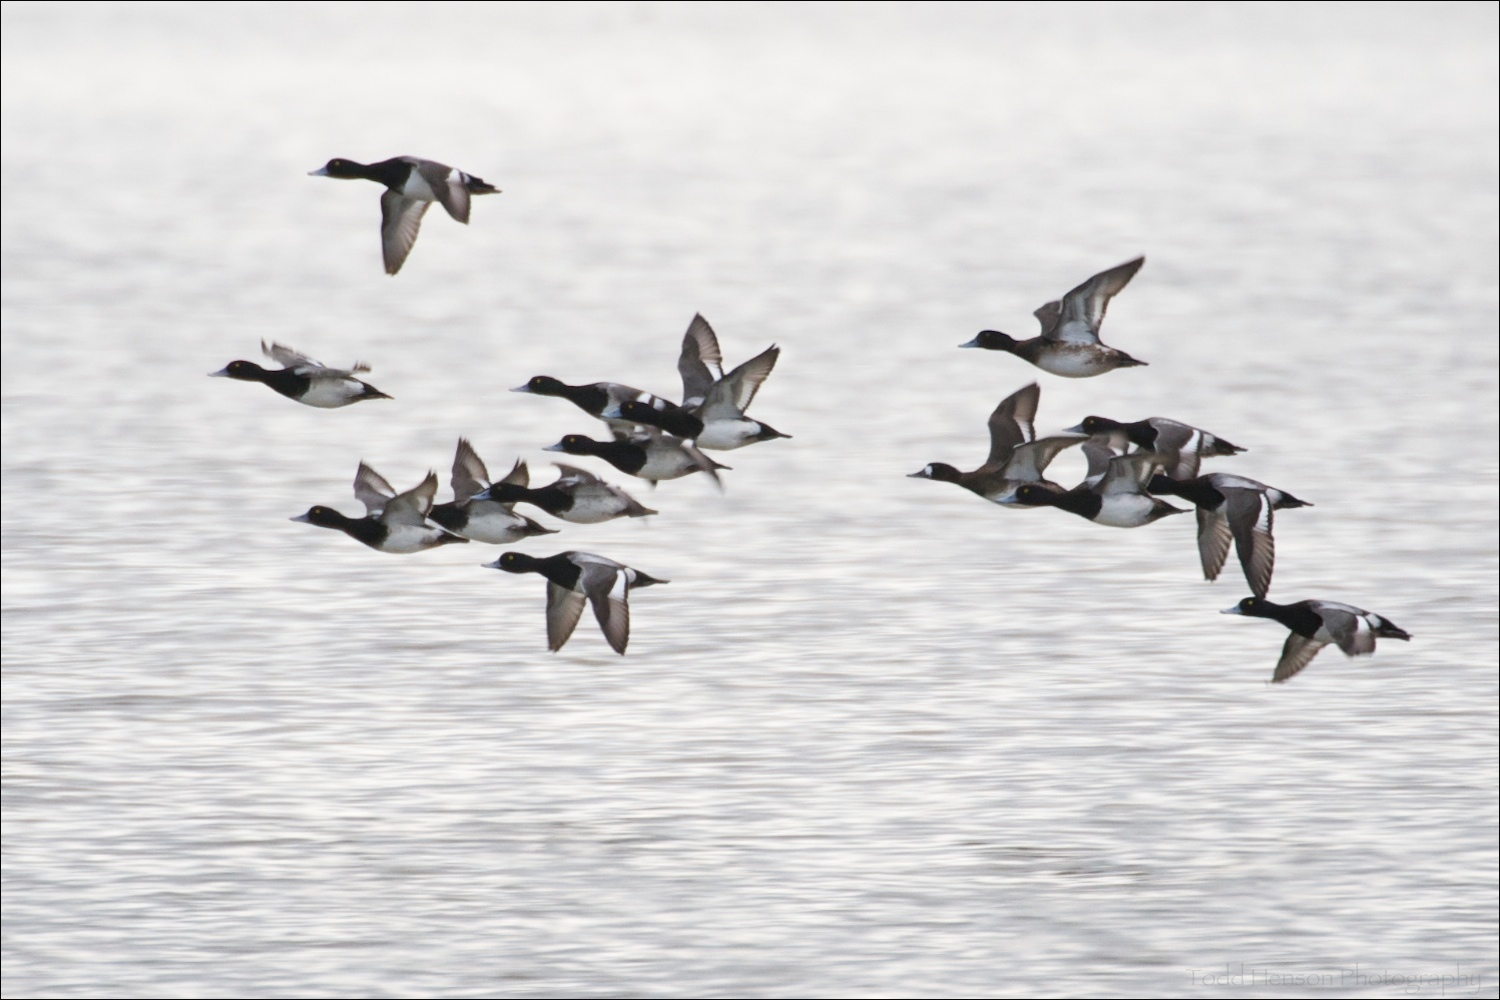 Group of Lesser Scaup in flight. Notice the female at the front of the second group. She has the white patch at the front of her head.